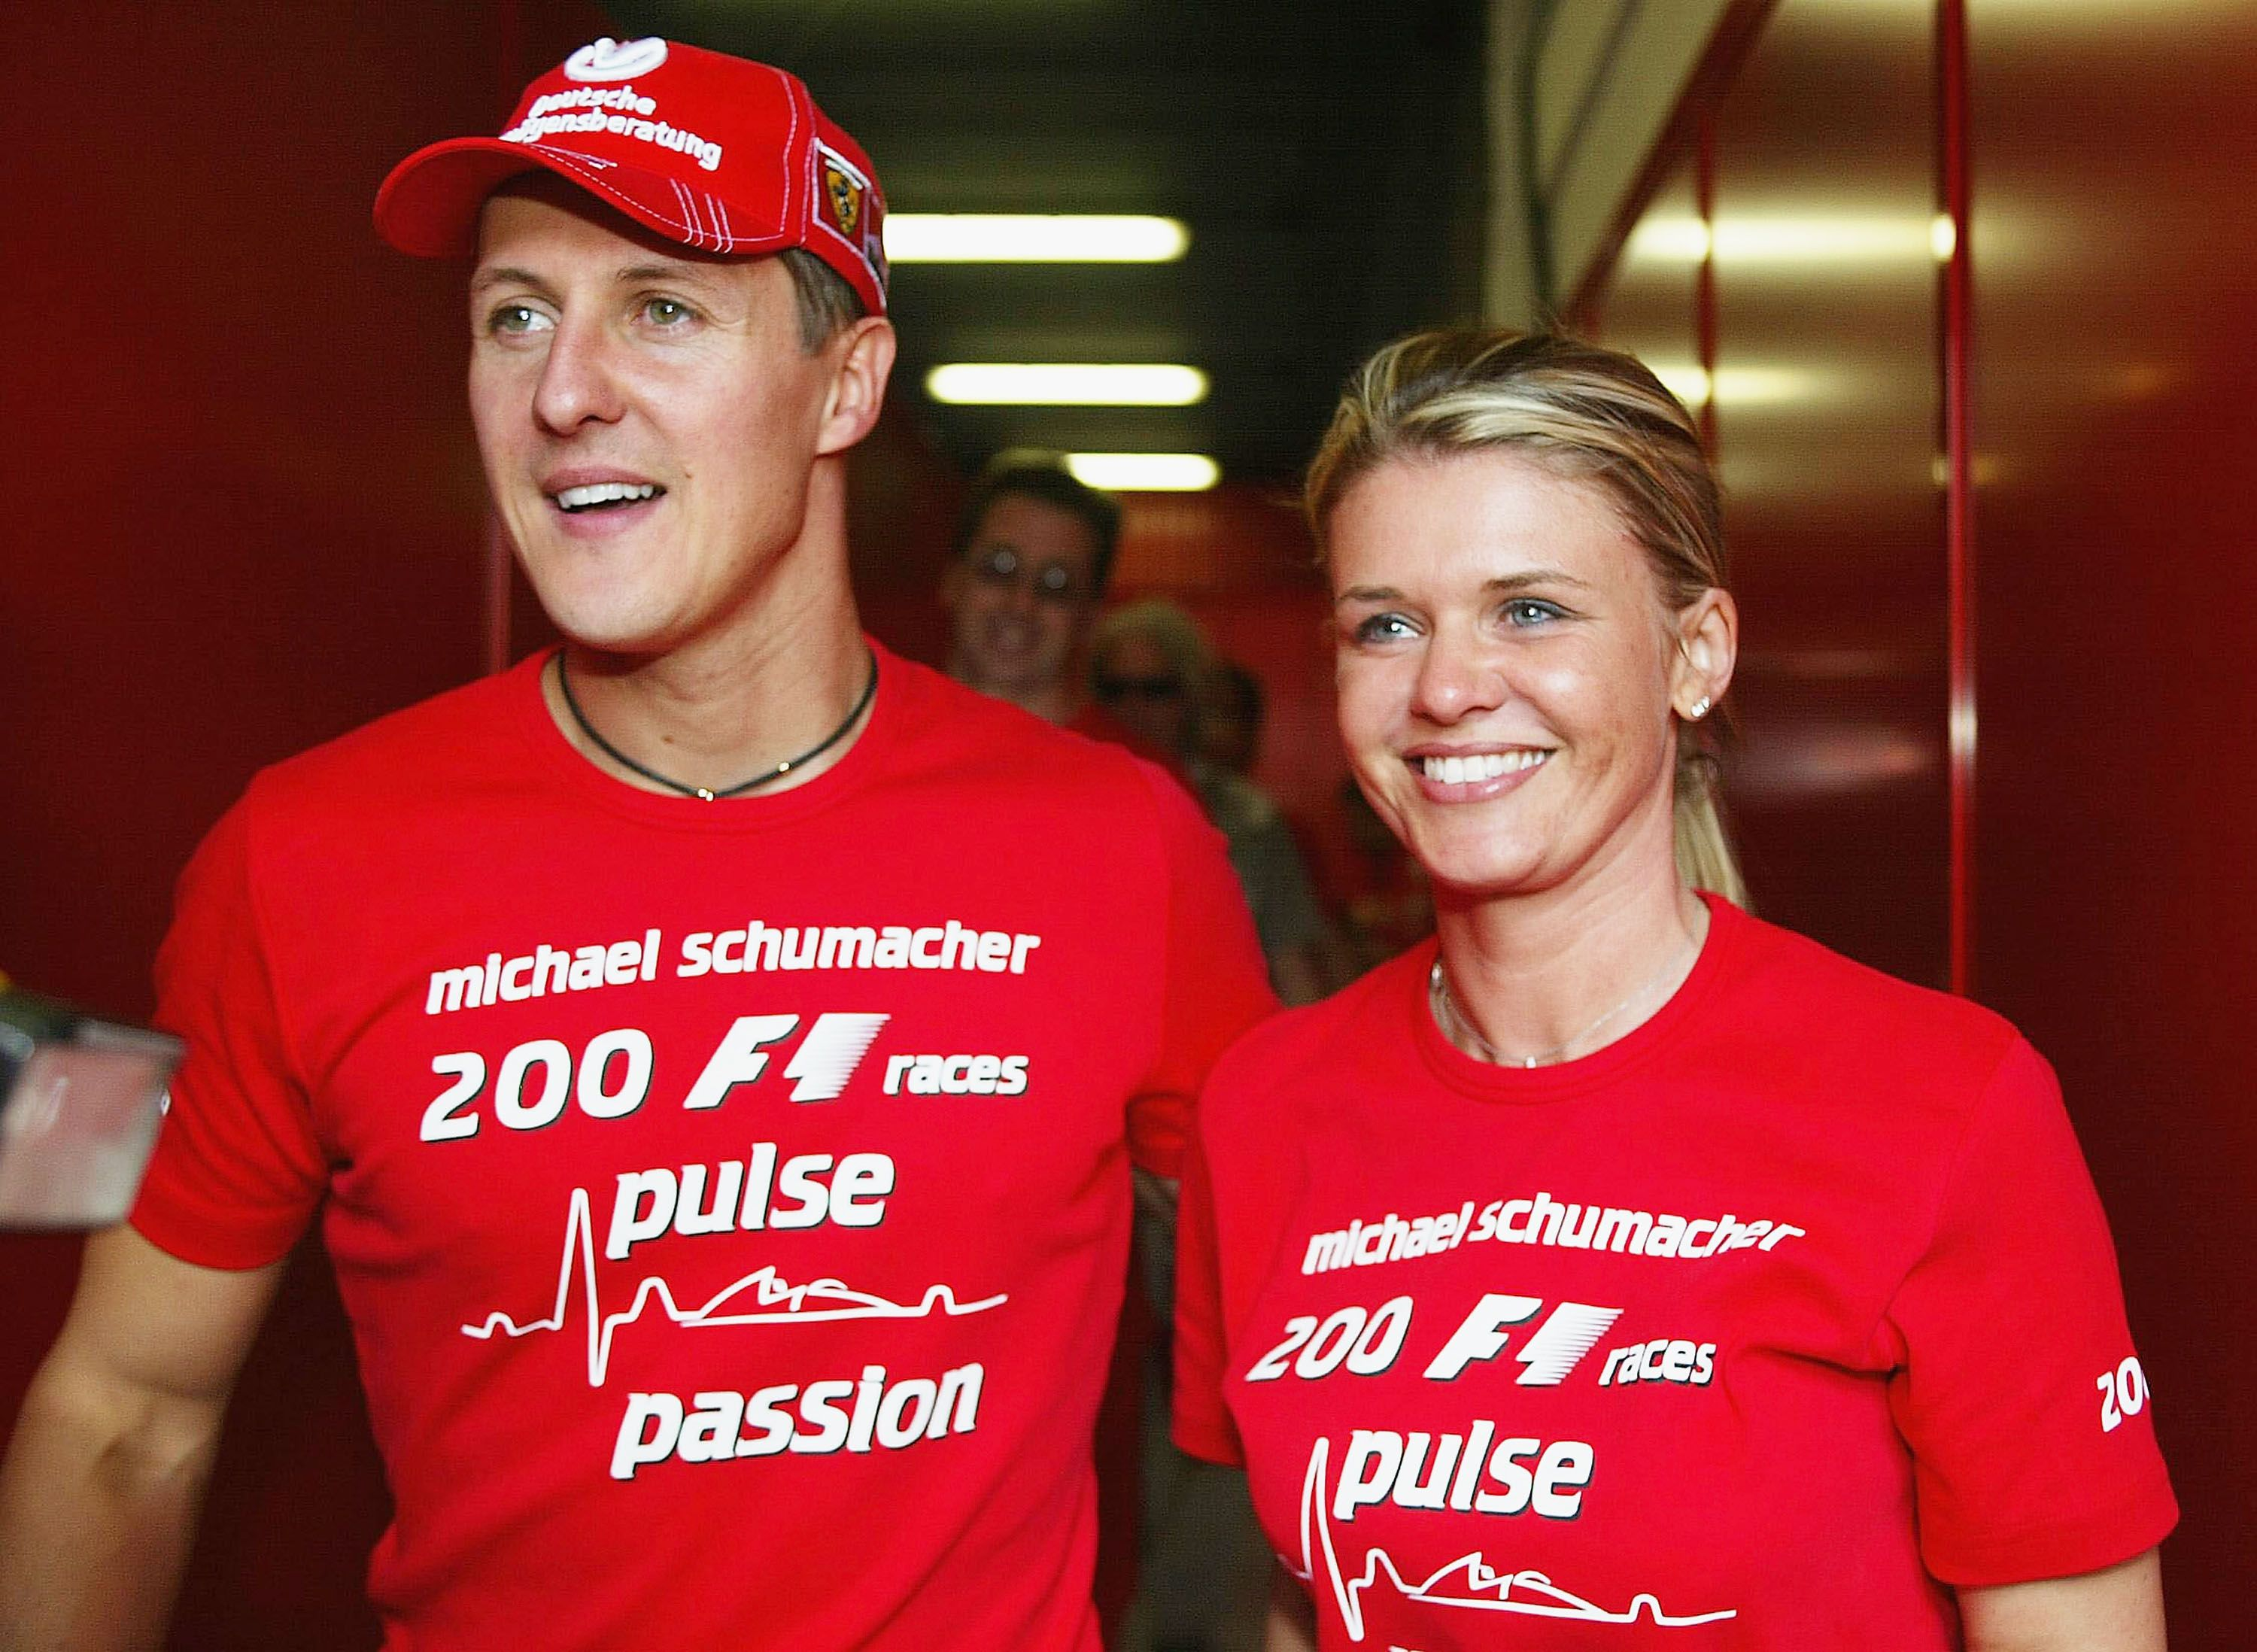 Schumacher S Wife Staying Strong With Images Michael